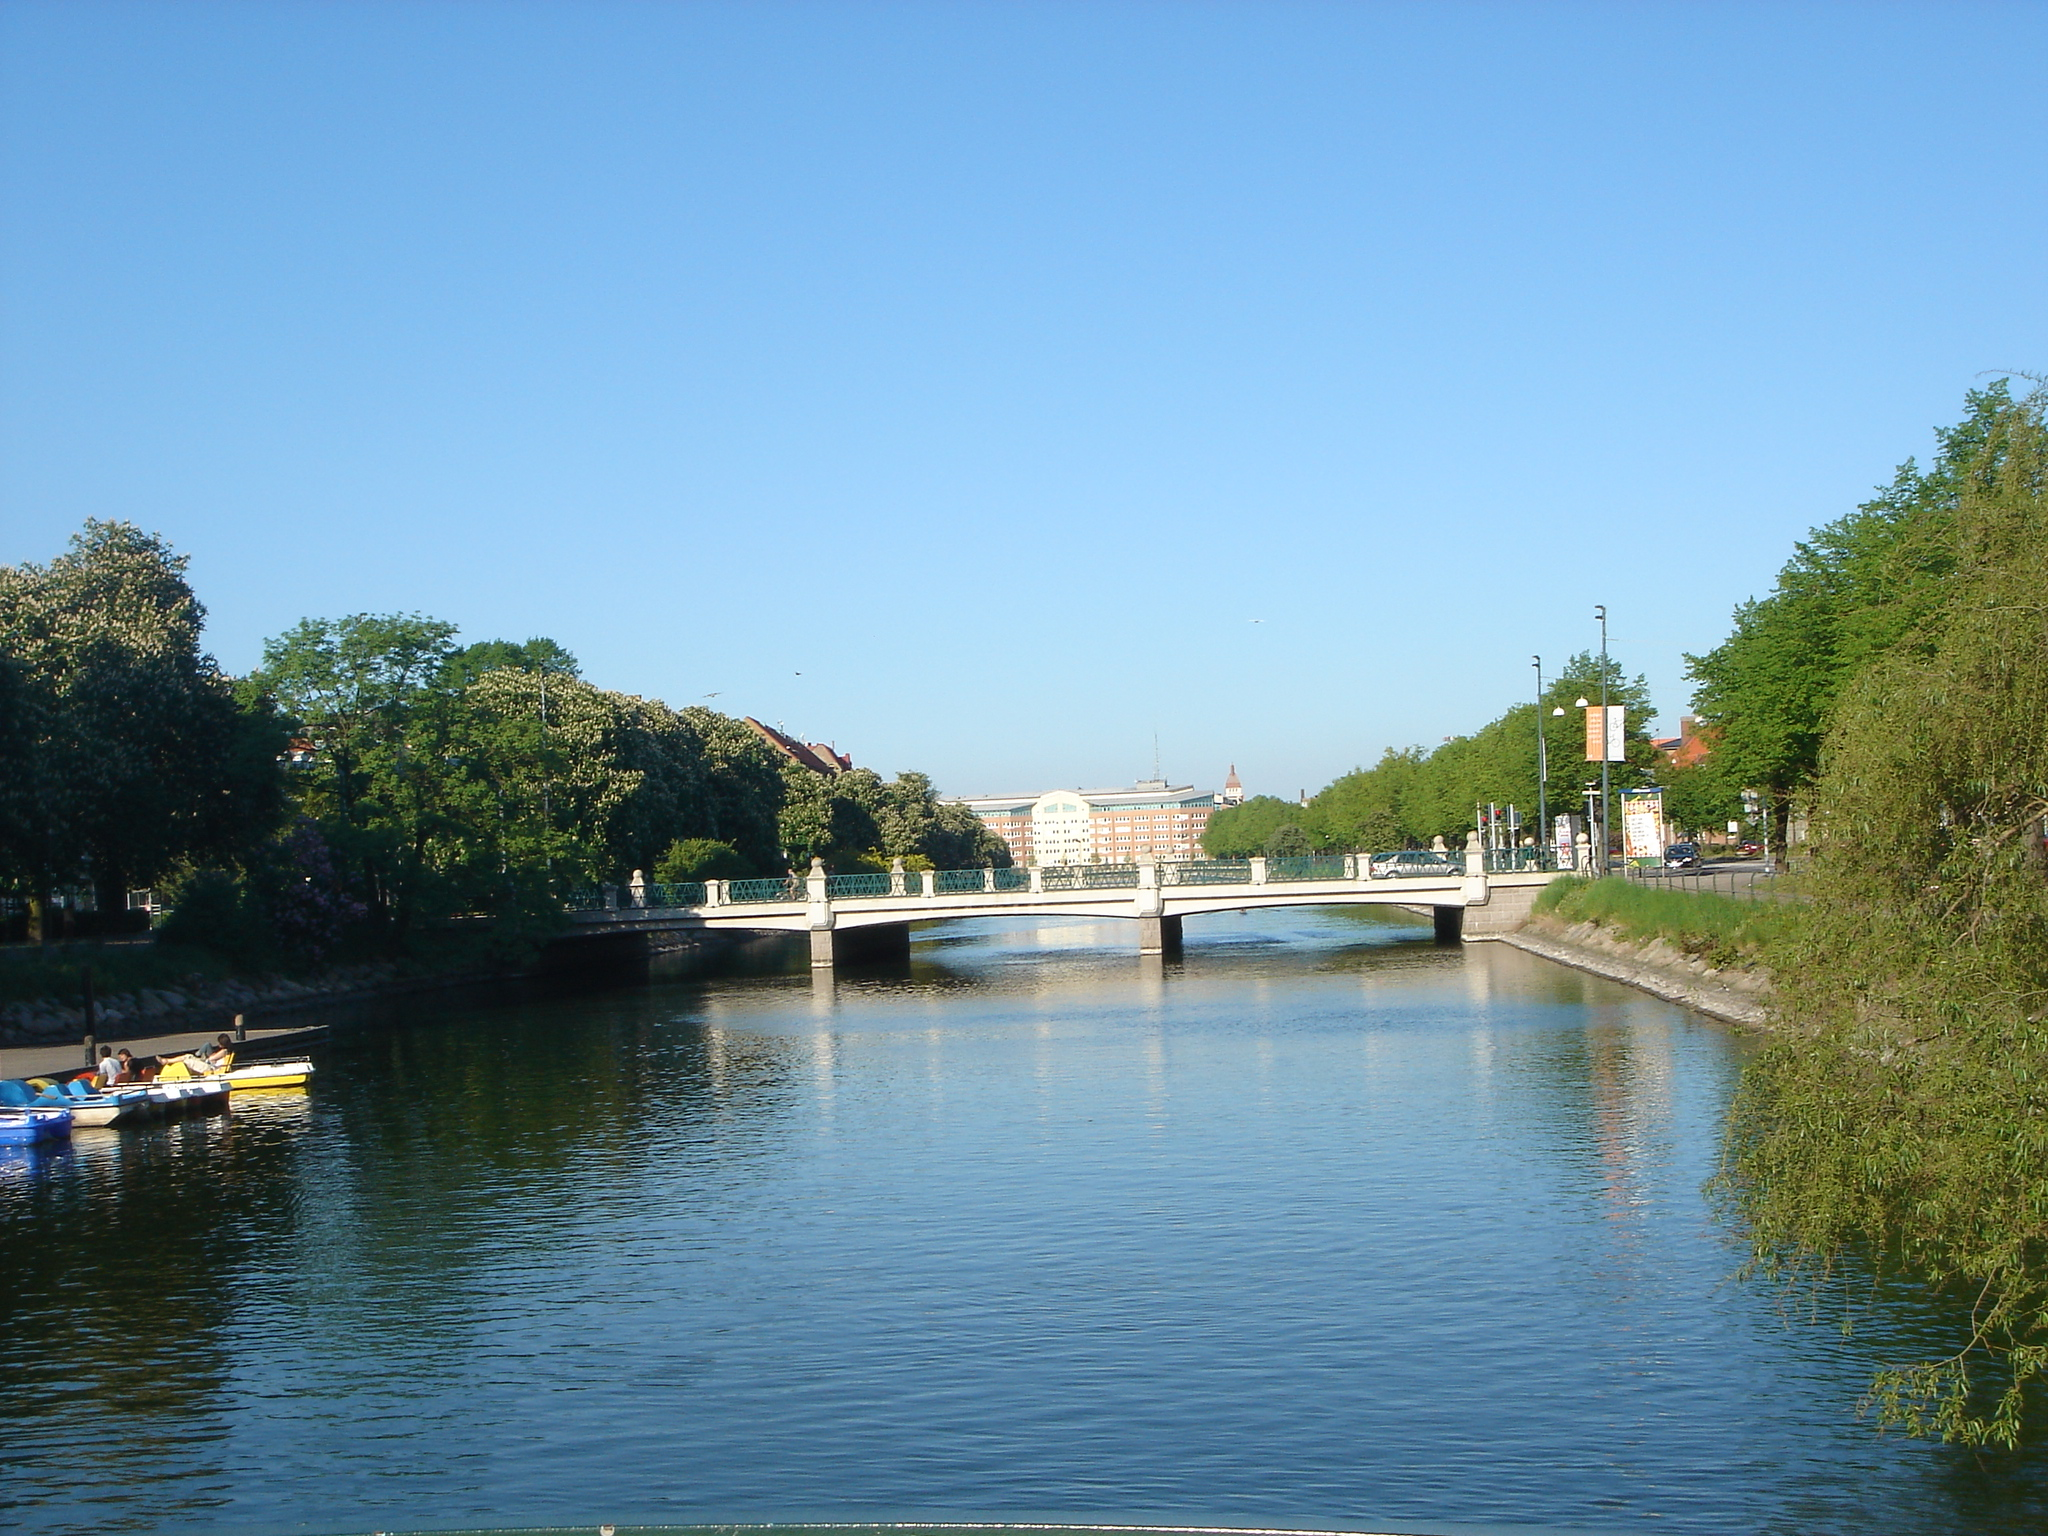 Canal Sodra Forstands